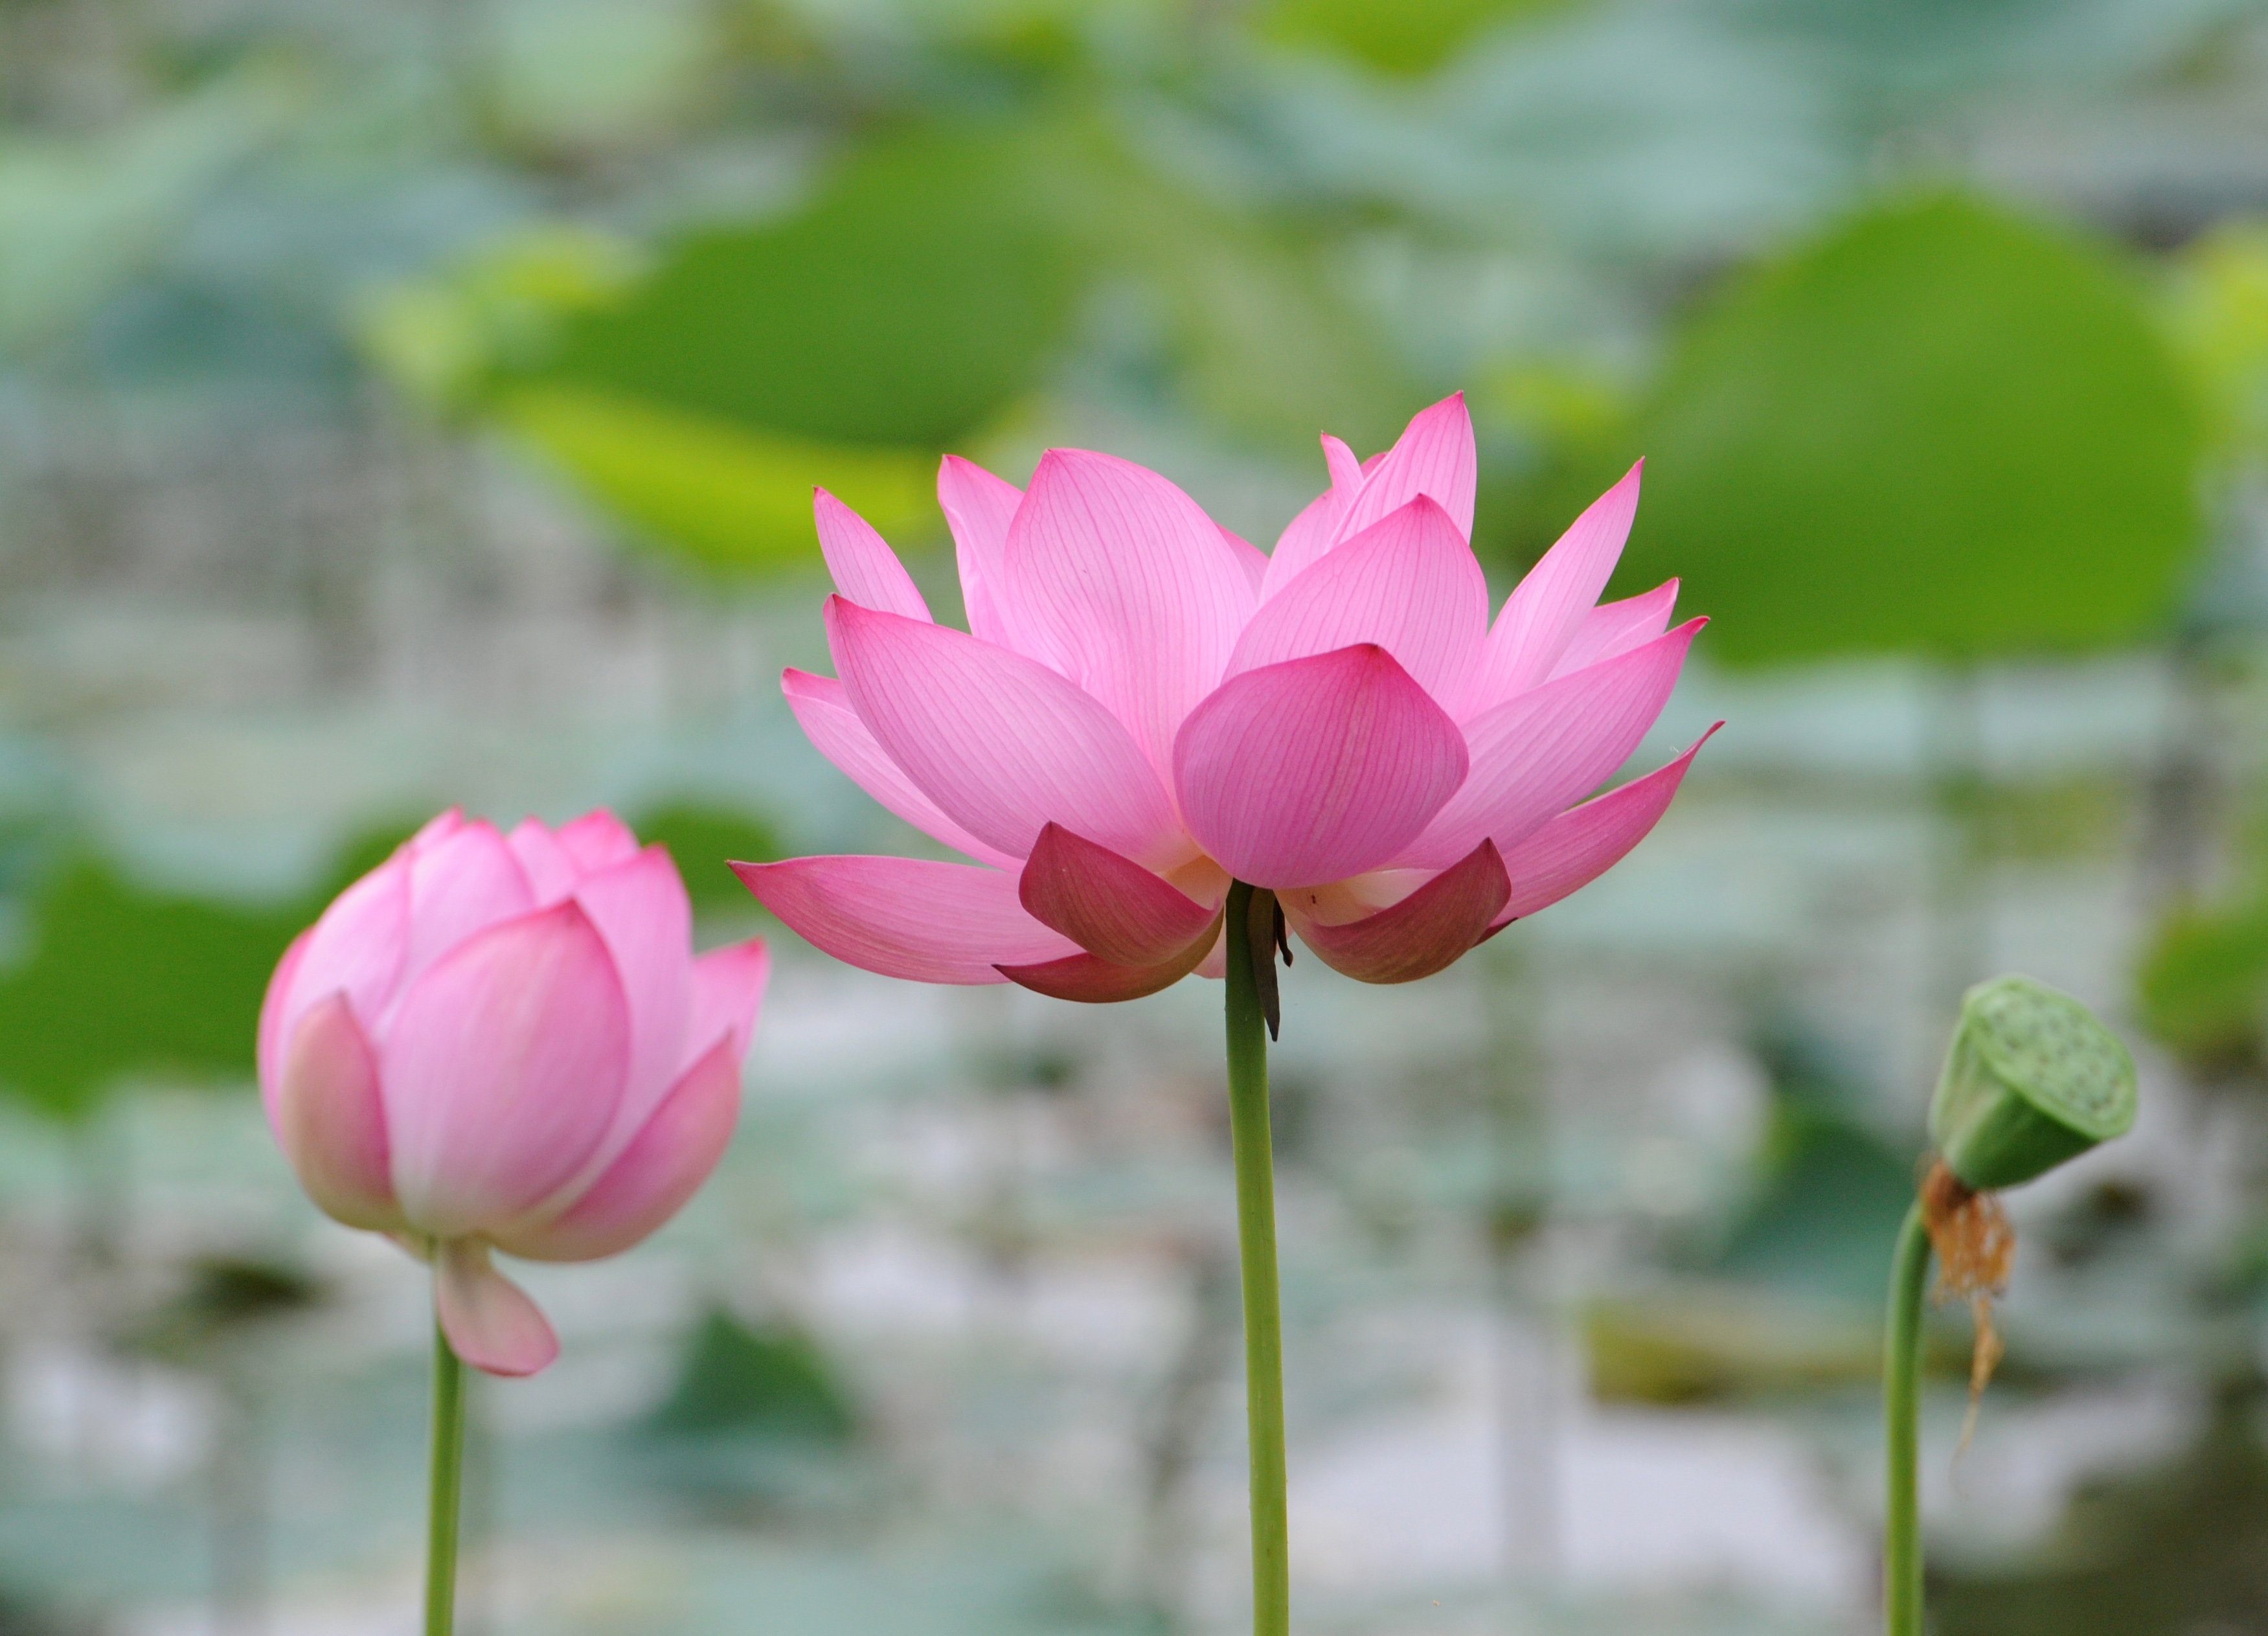 20 Year Old Chinese Man Put On Trial For Sharing Picture Of Lotus